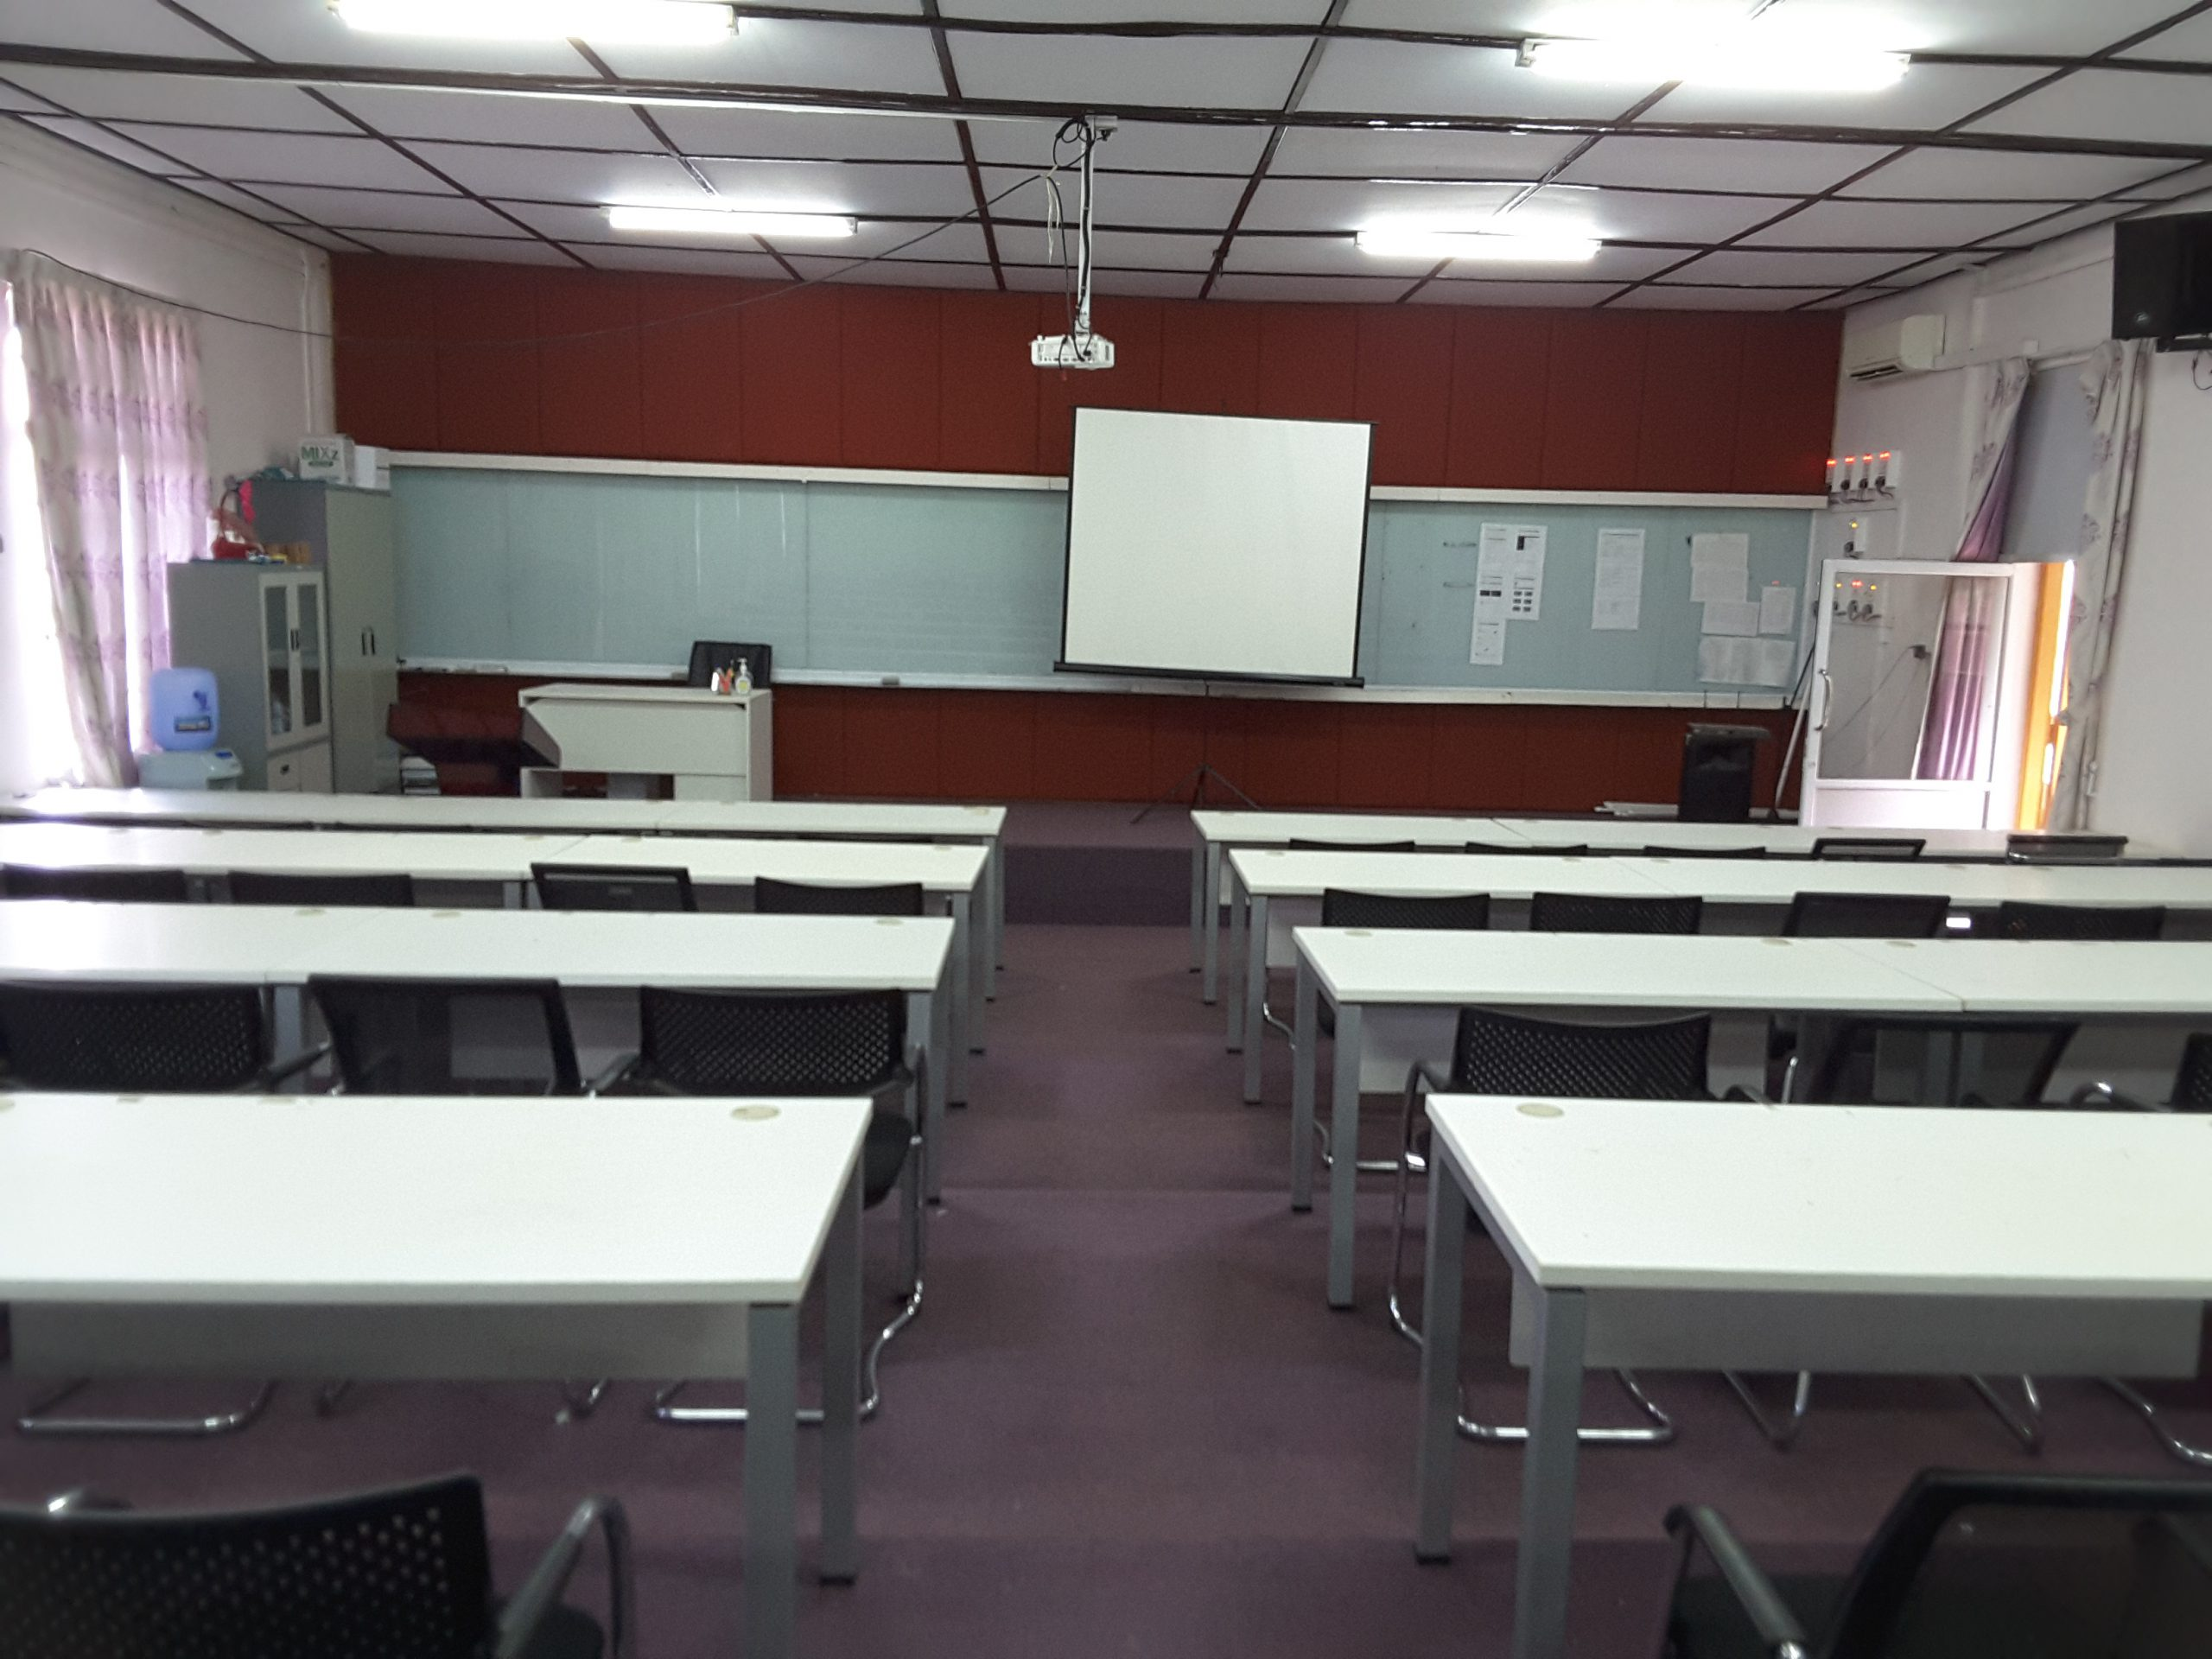 Mater of Marketing Management Classroom (KMY)